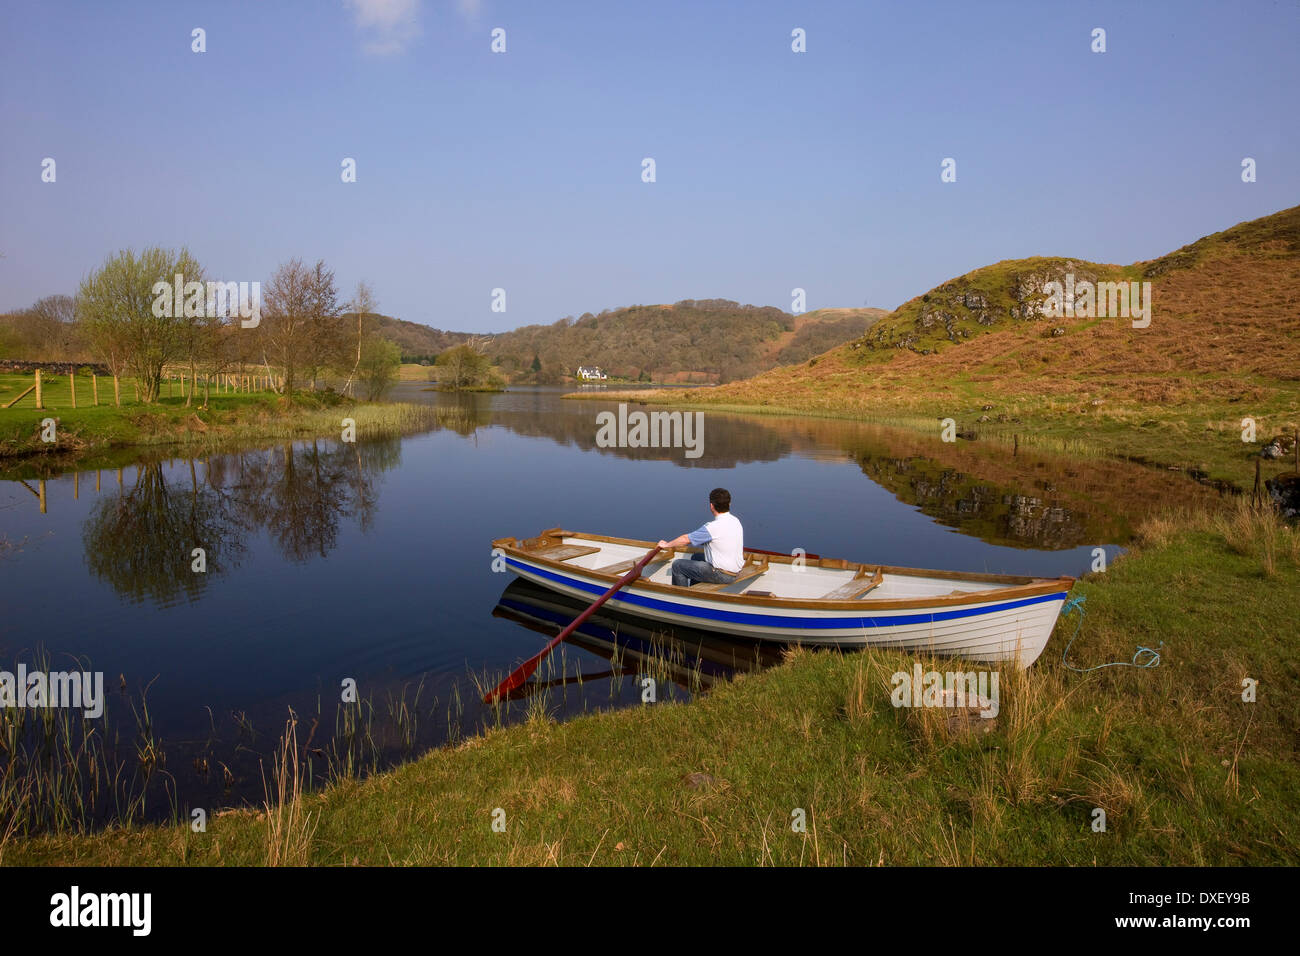 Rowing boat on a peaceful loch Nell in argyll - Stock Image